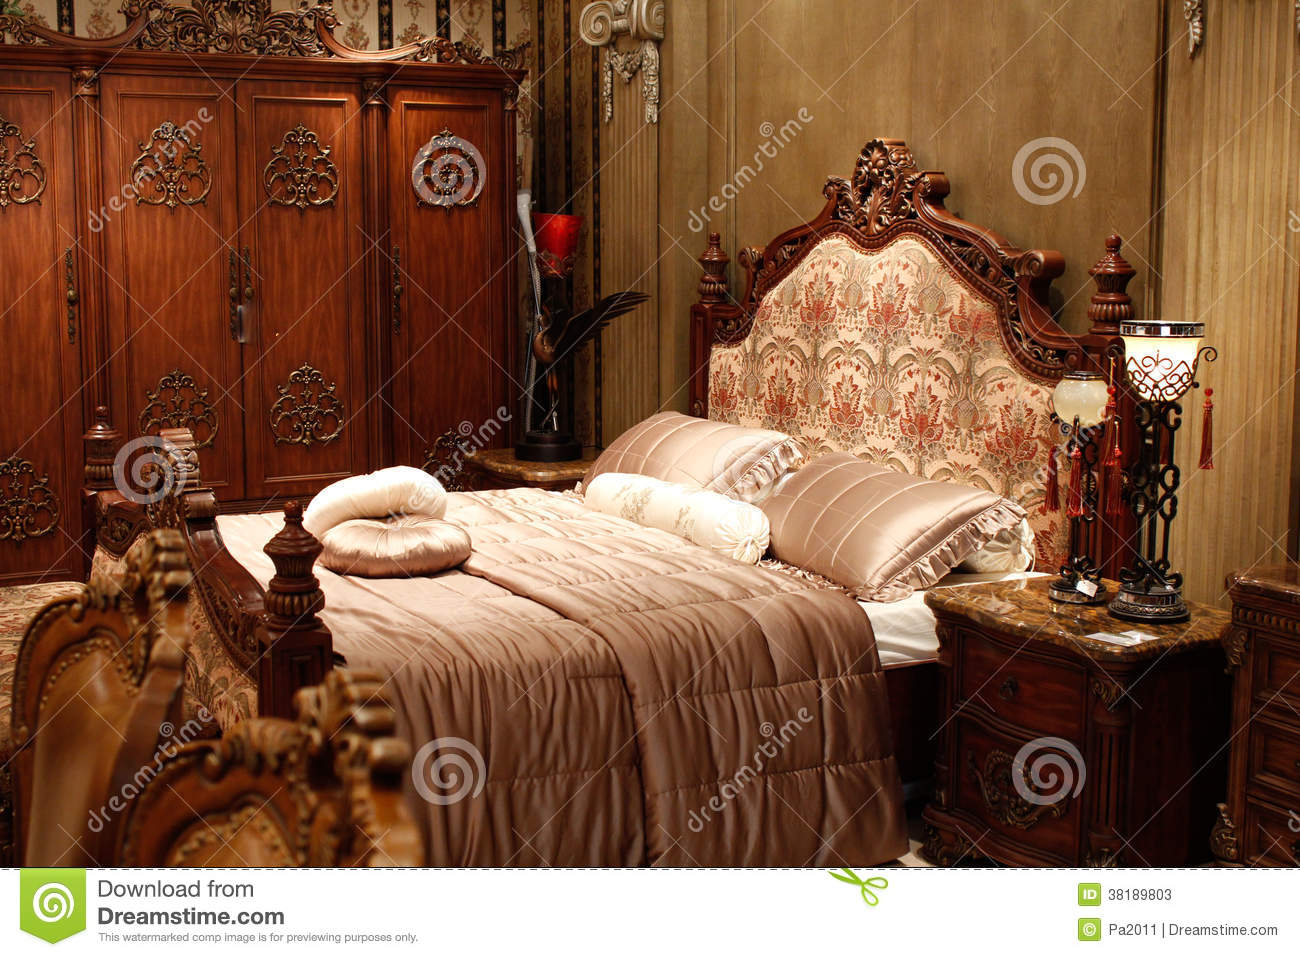 Meubles Classiques Chinois Chambre Coucher Image Stock Image  # Meuble Copie Chinois